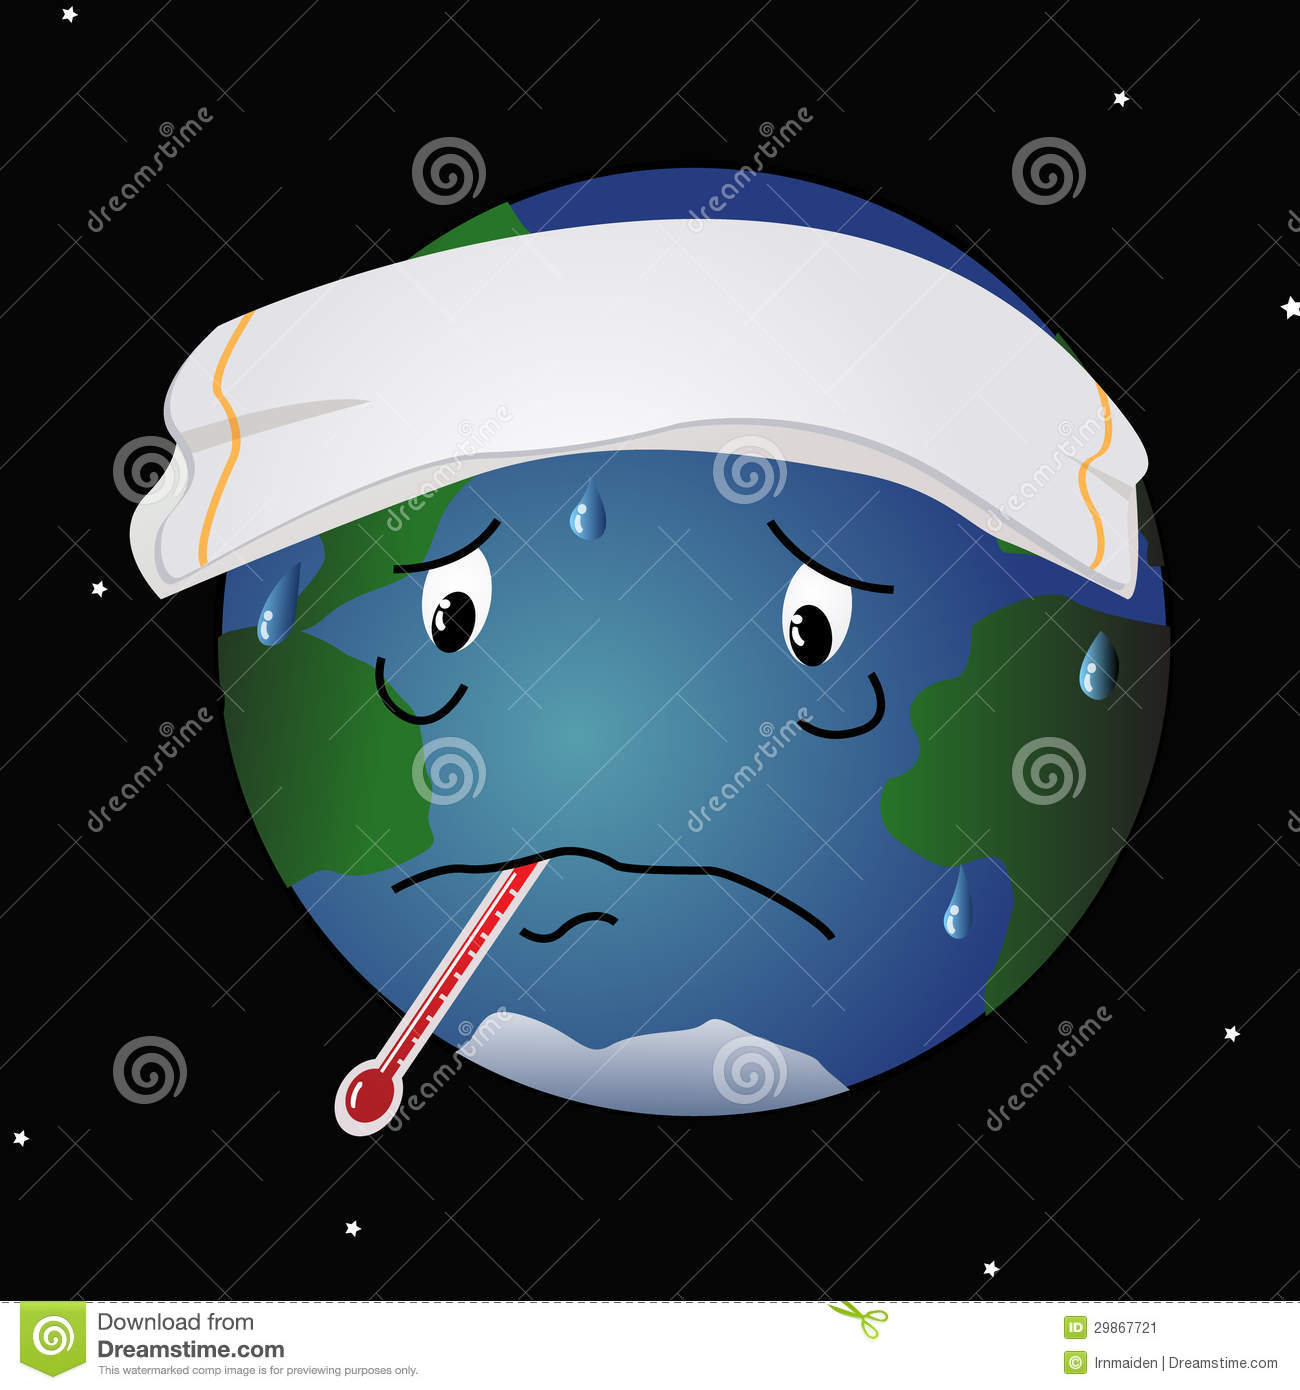 essay on earth an ailing planet The planet ailing earth essay on december 14, 2017 @ 8:47 pm arbeitsvertrag beispiel essay help on writing essays xl, lkcmedicine research paper my life in 25.